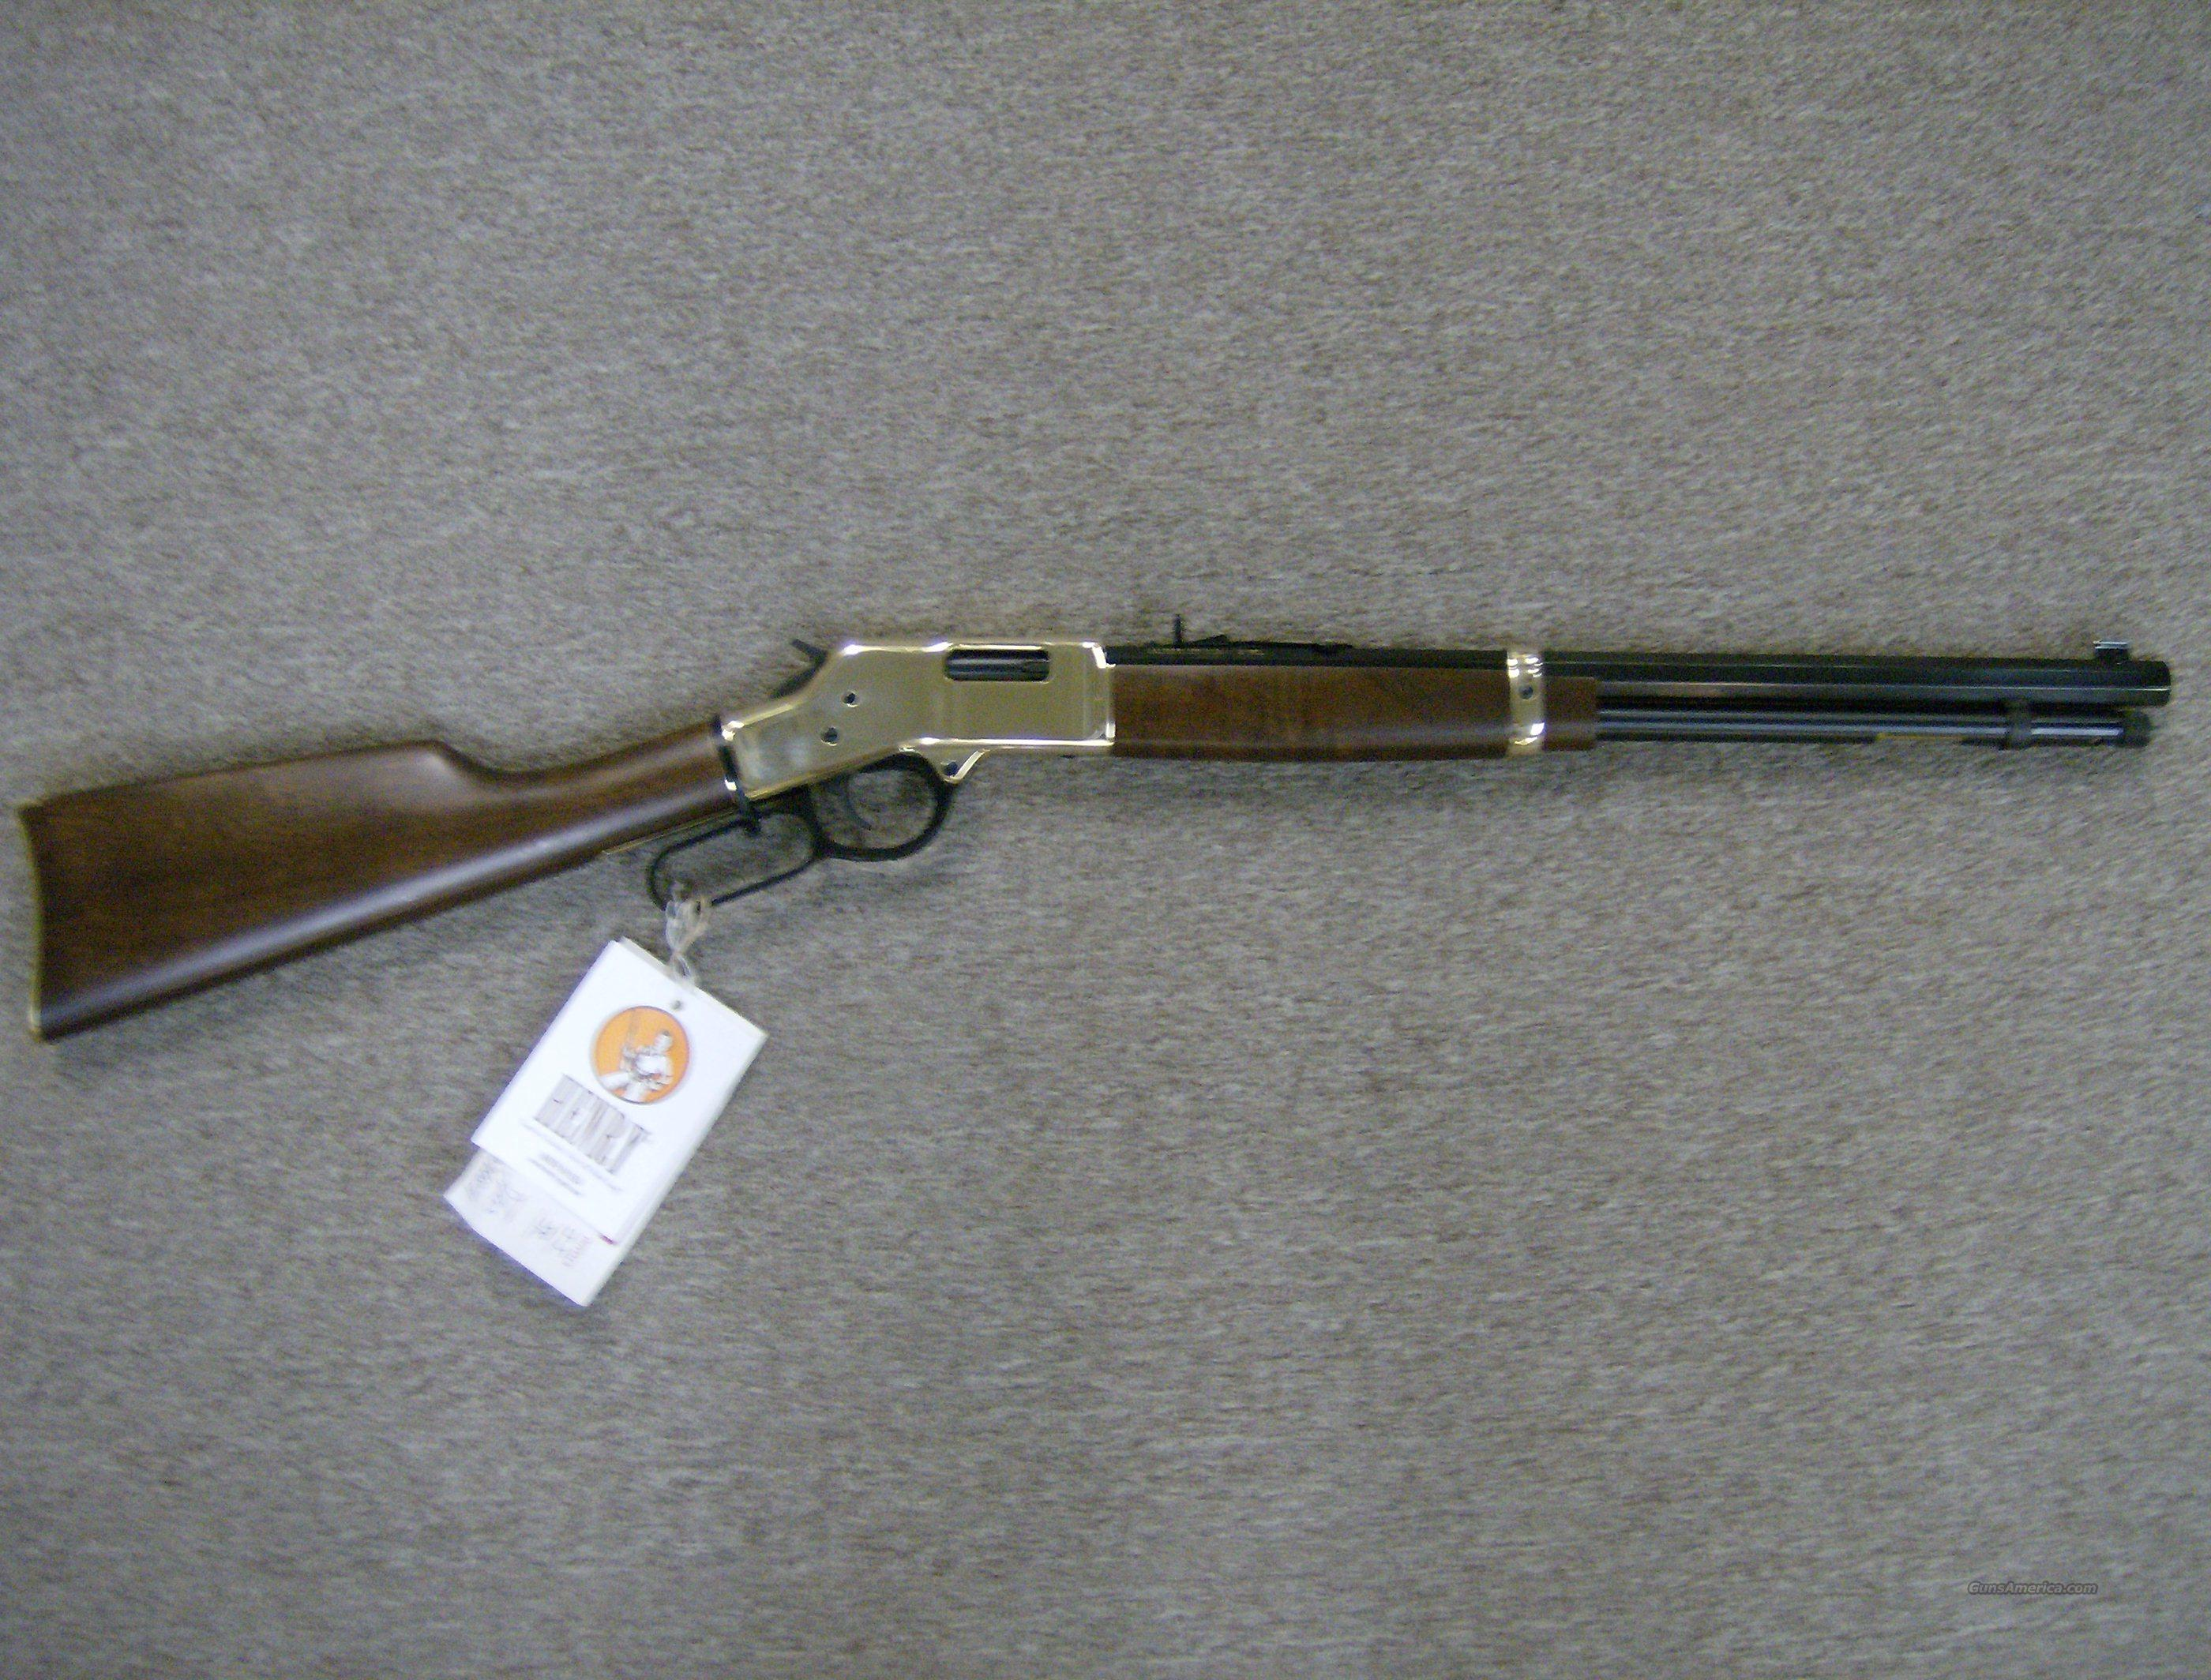 HENRY BIG BOY 357MAG/38SPL LA  Guns > Rifles > Henry Rifle Company